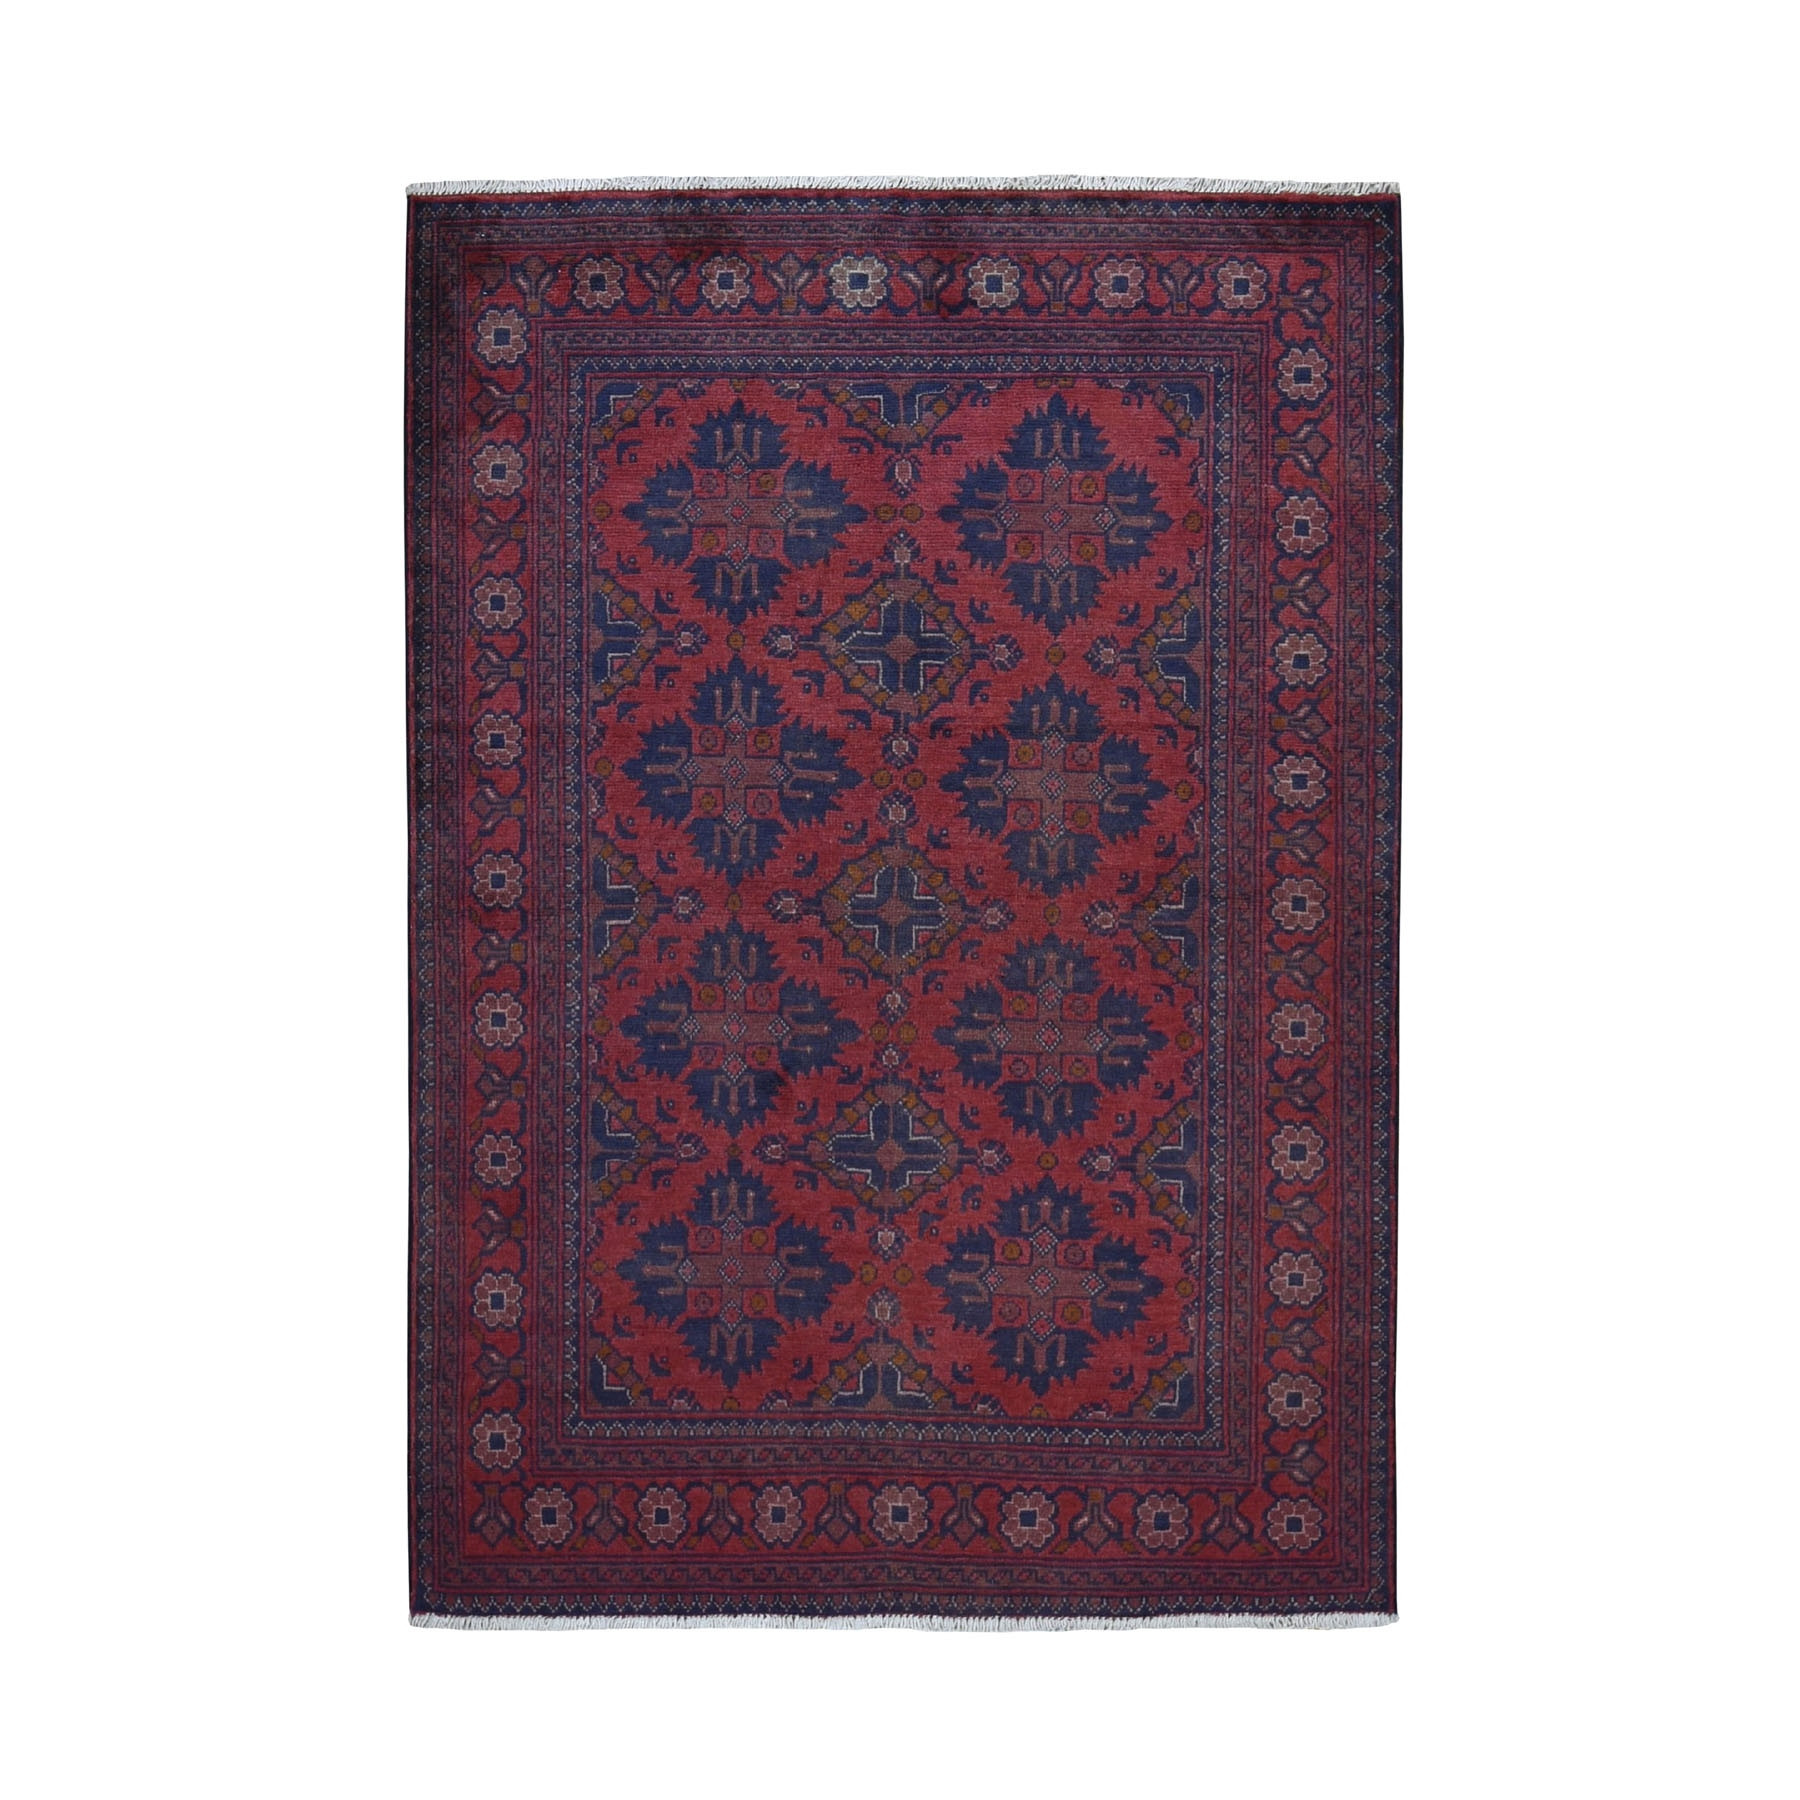 """3'4""""X4'10"""" Deep And Saturated Red Tribal Afghan Andkhoy Pure Wool Hand Knotted Oriental Rug moad97be"""